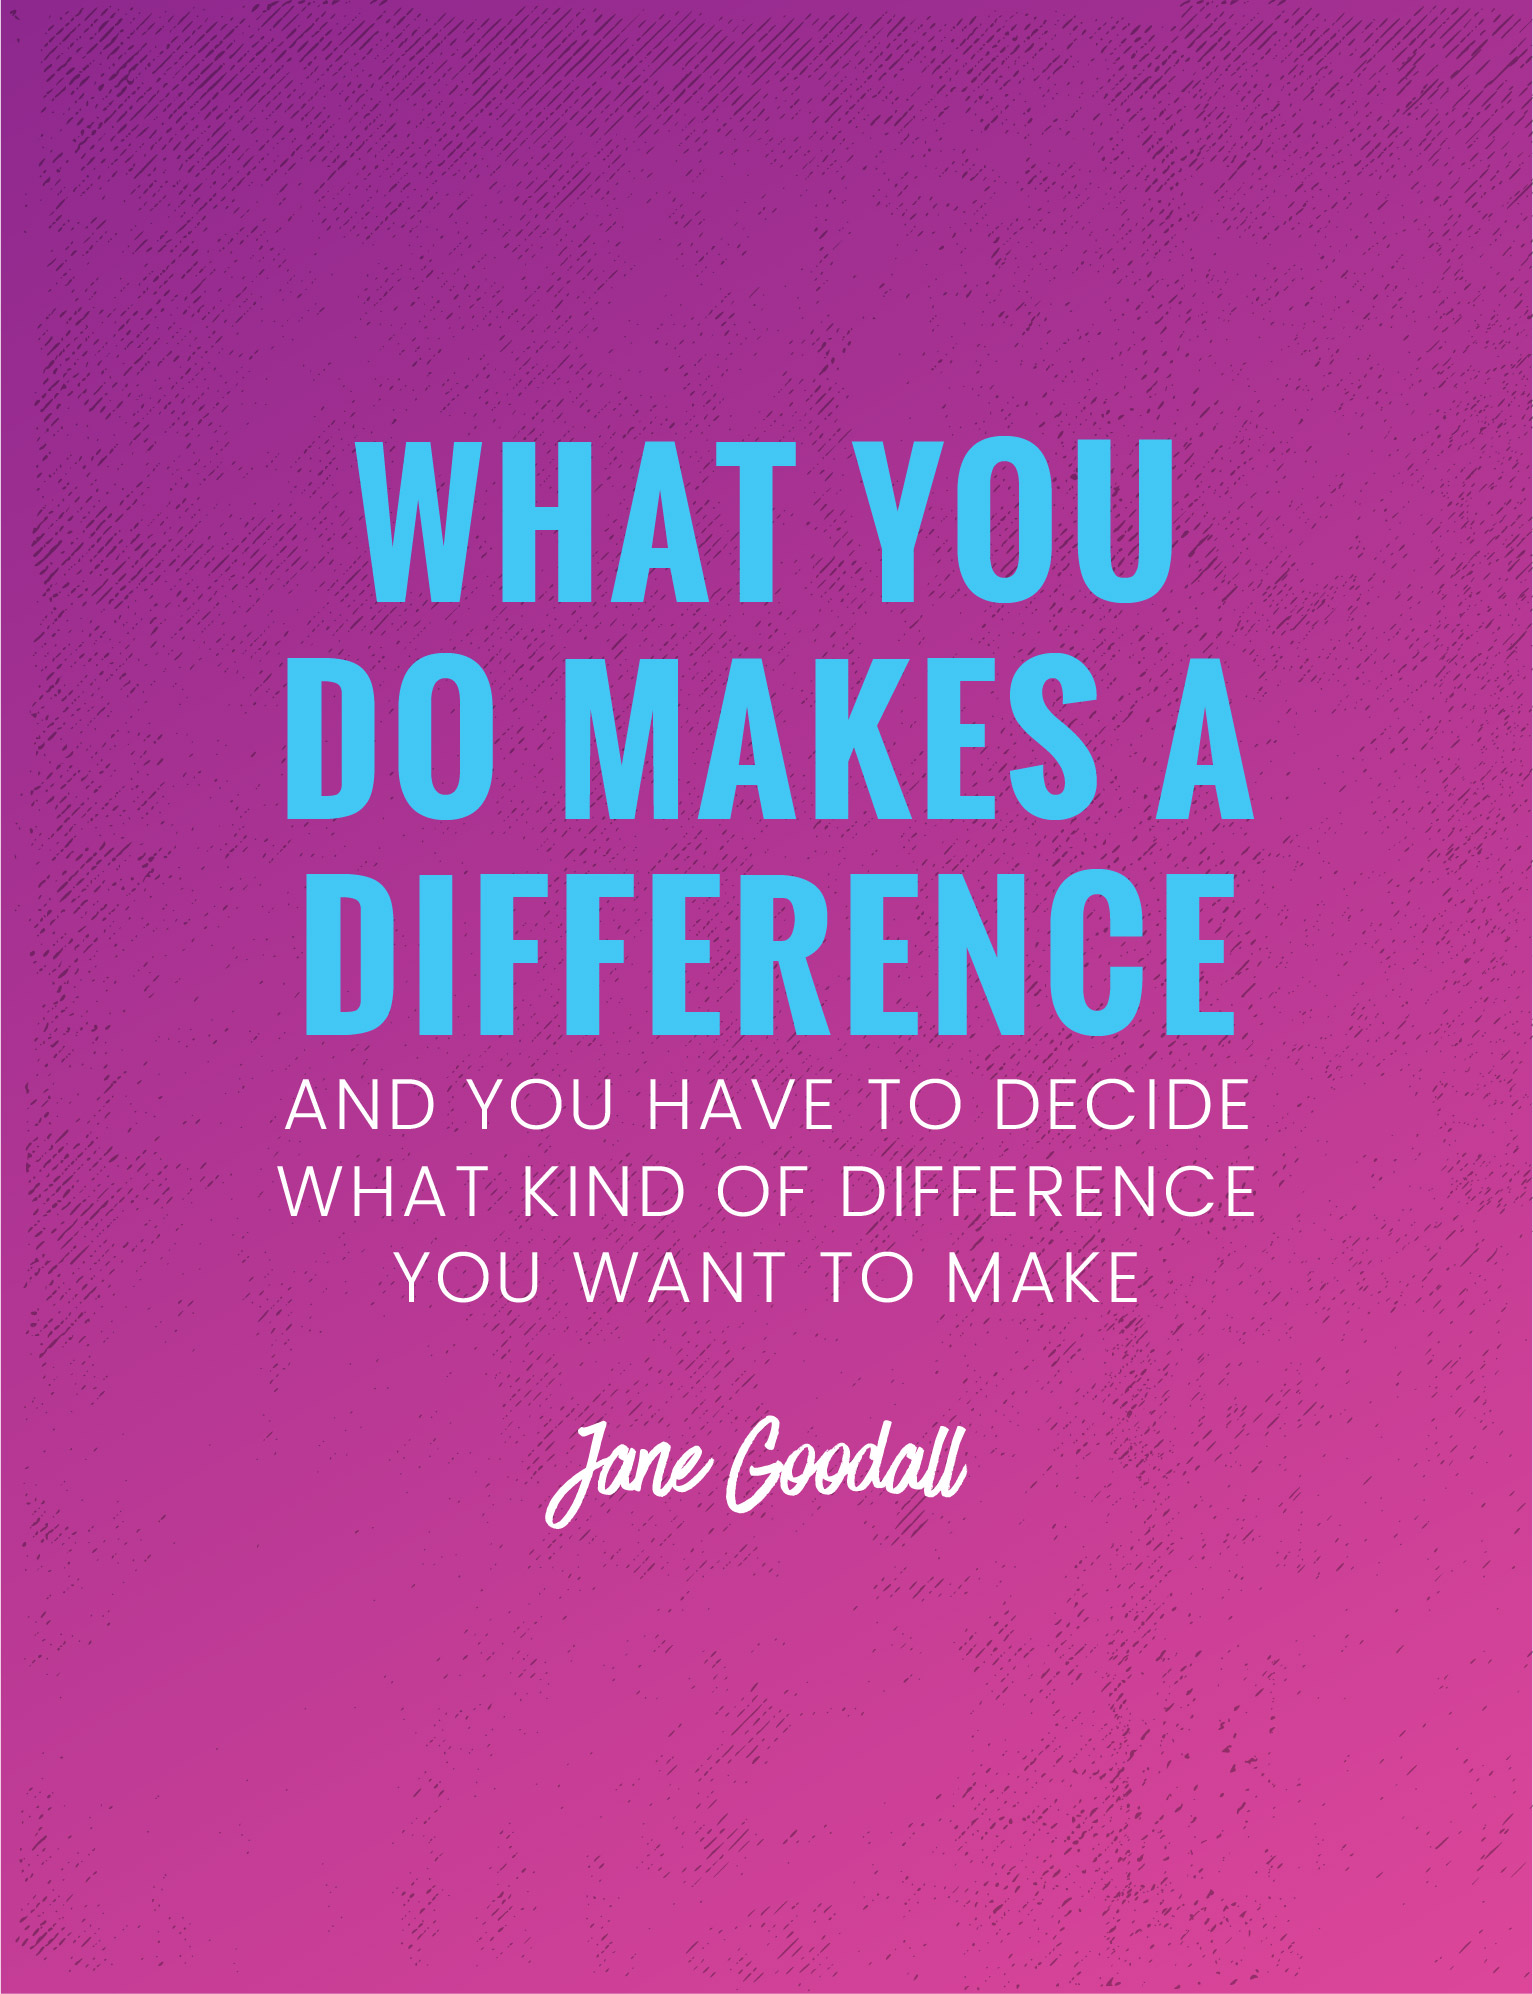 What you do makes a difference and you have to decide what kind of difference you want to make